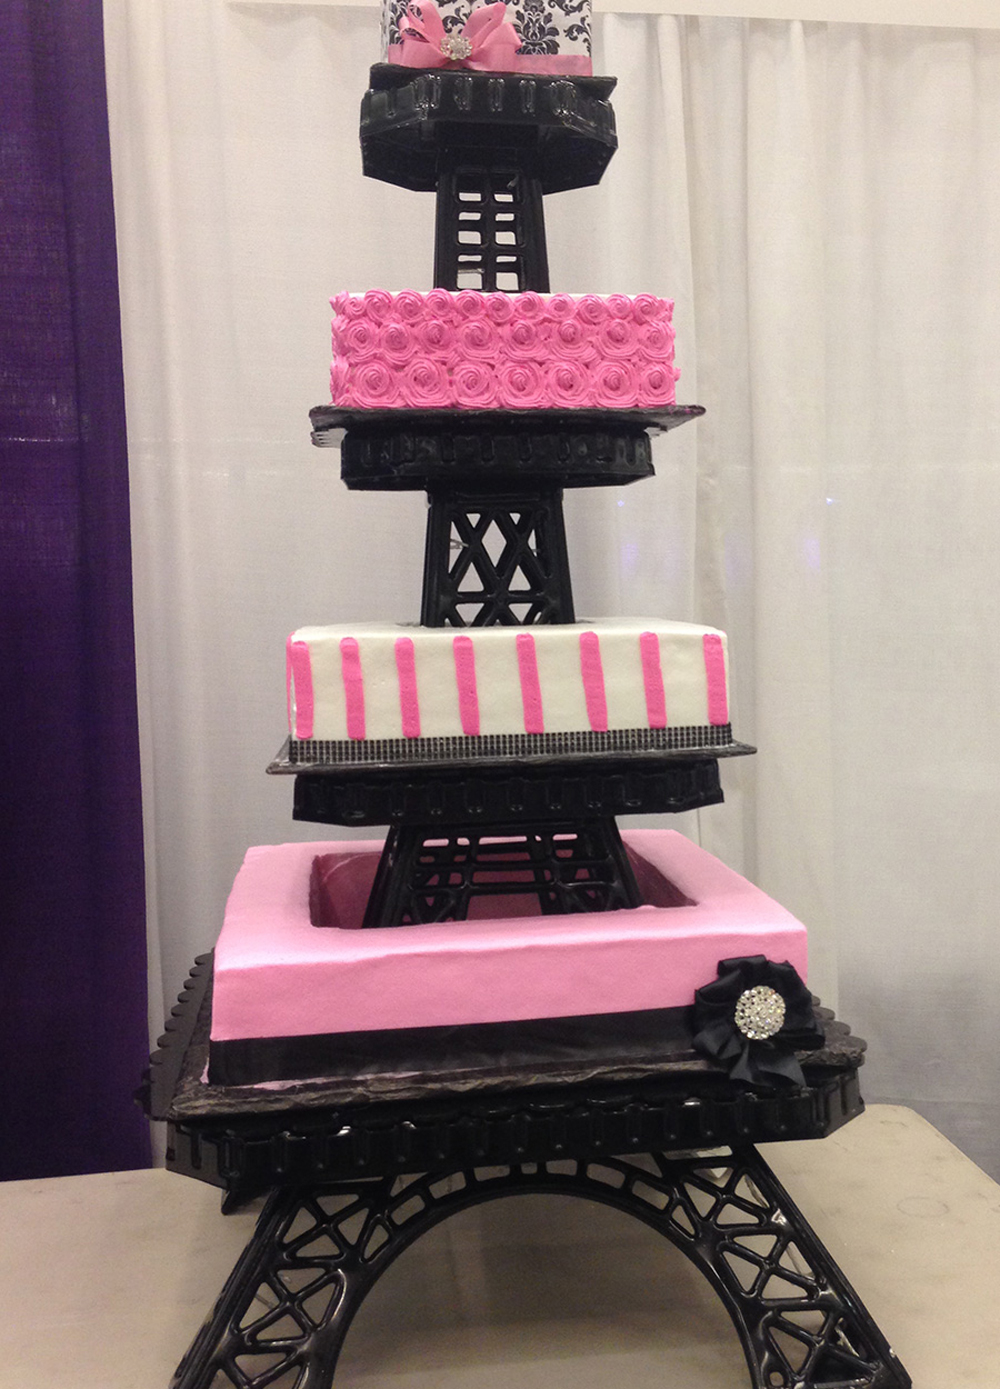 Quinceanera cake Eiffel tower